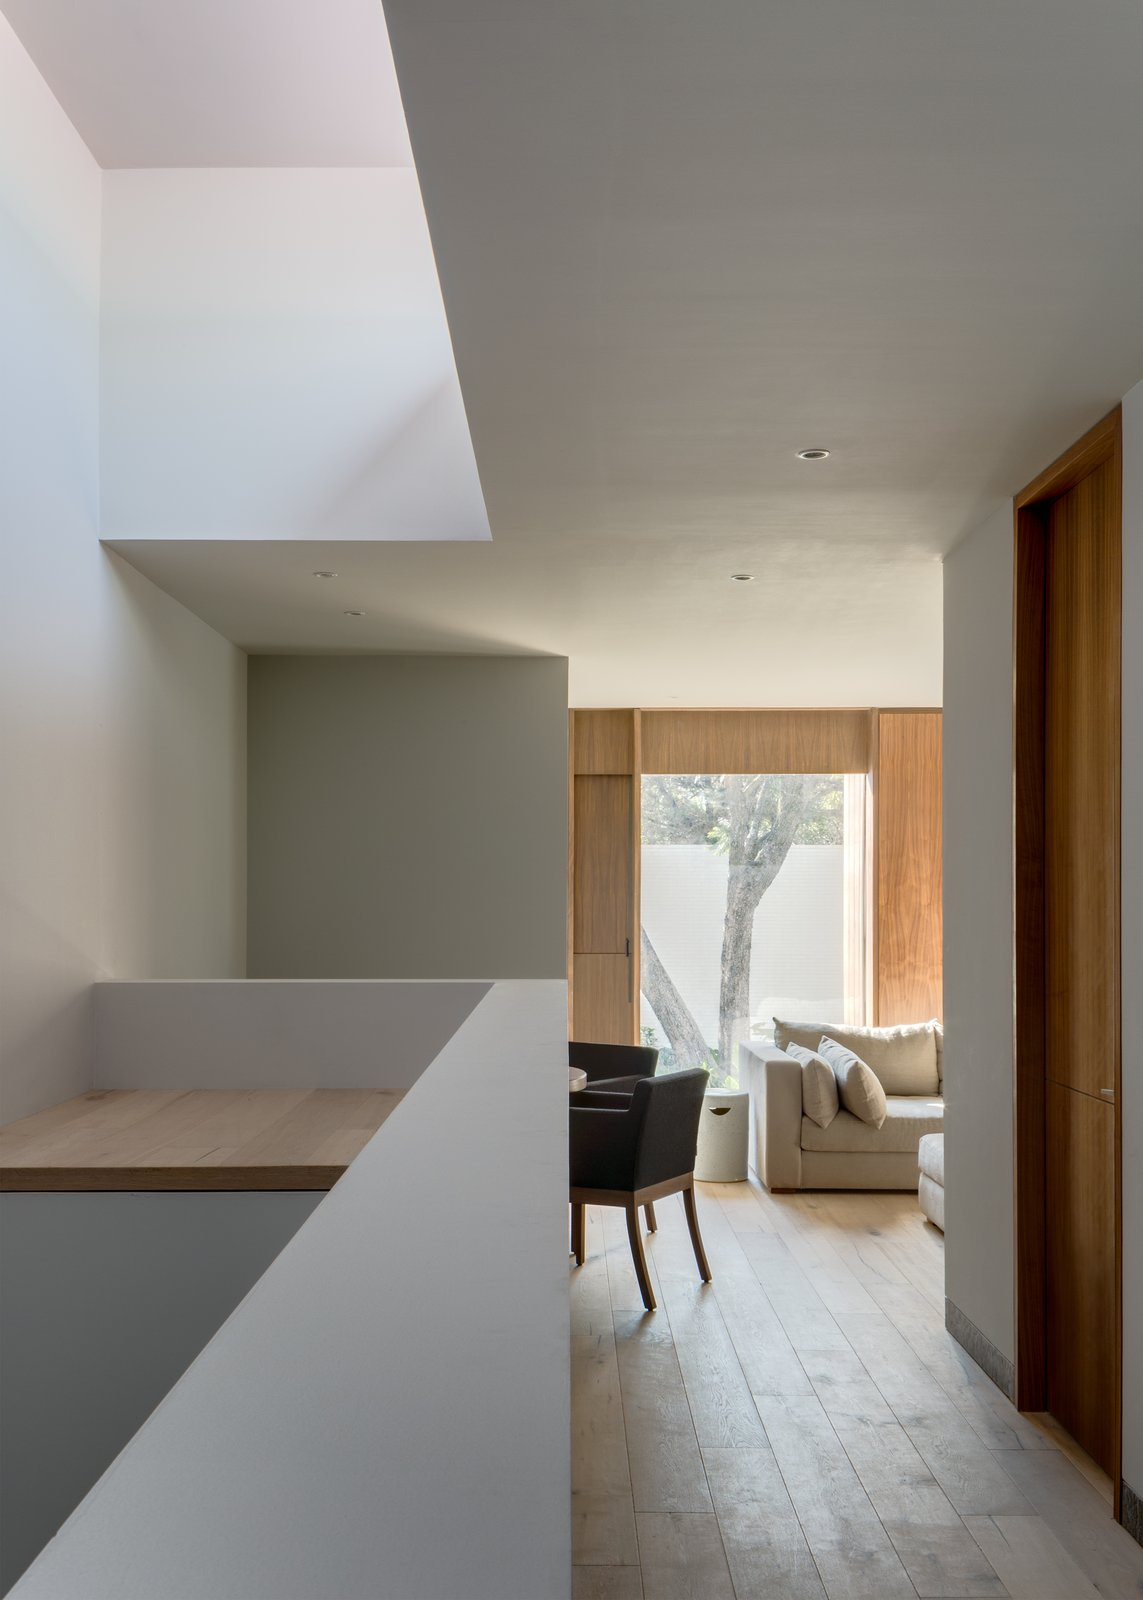 Living Room, Sofa, Recessed Lighting, Chair, and Medium Hardwood Floor  Photo 4 of 20 in A Serene Home in Mexico Weaves Around Verdant Gardens